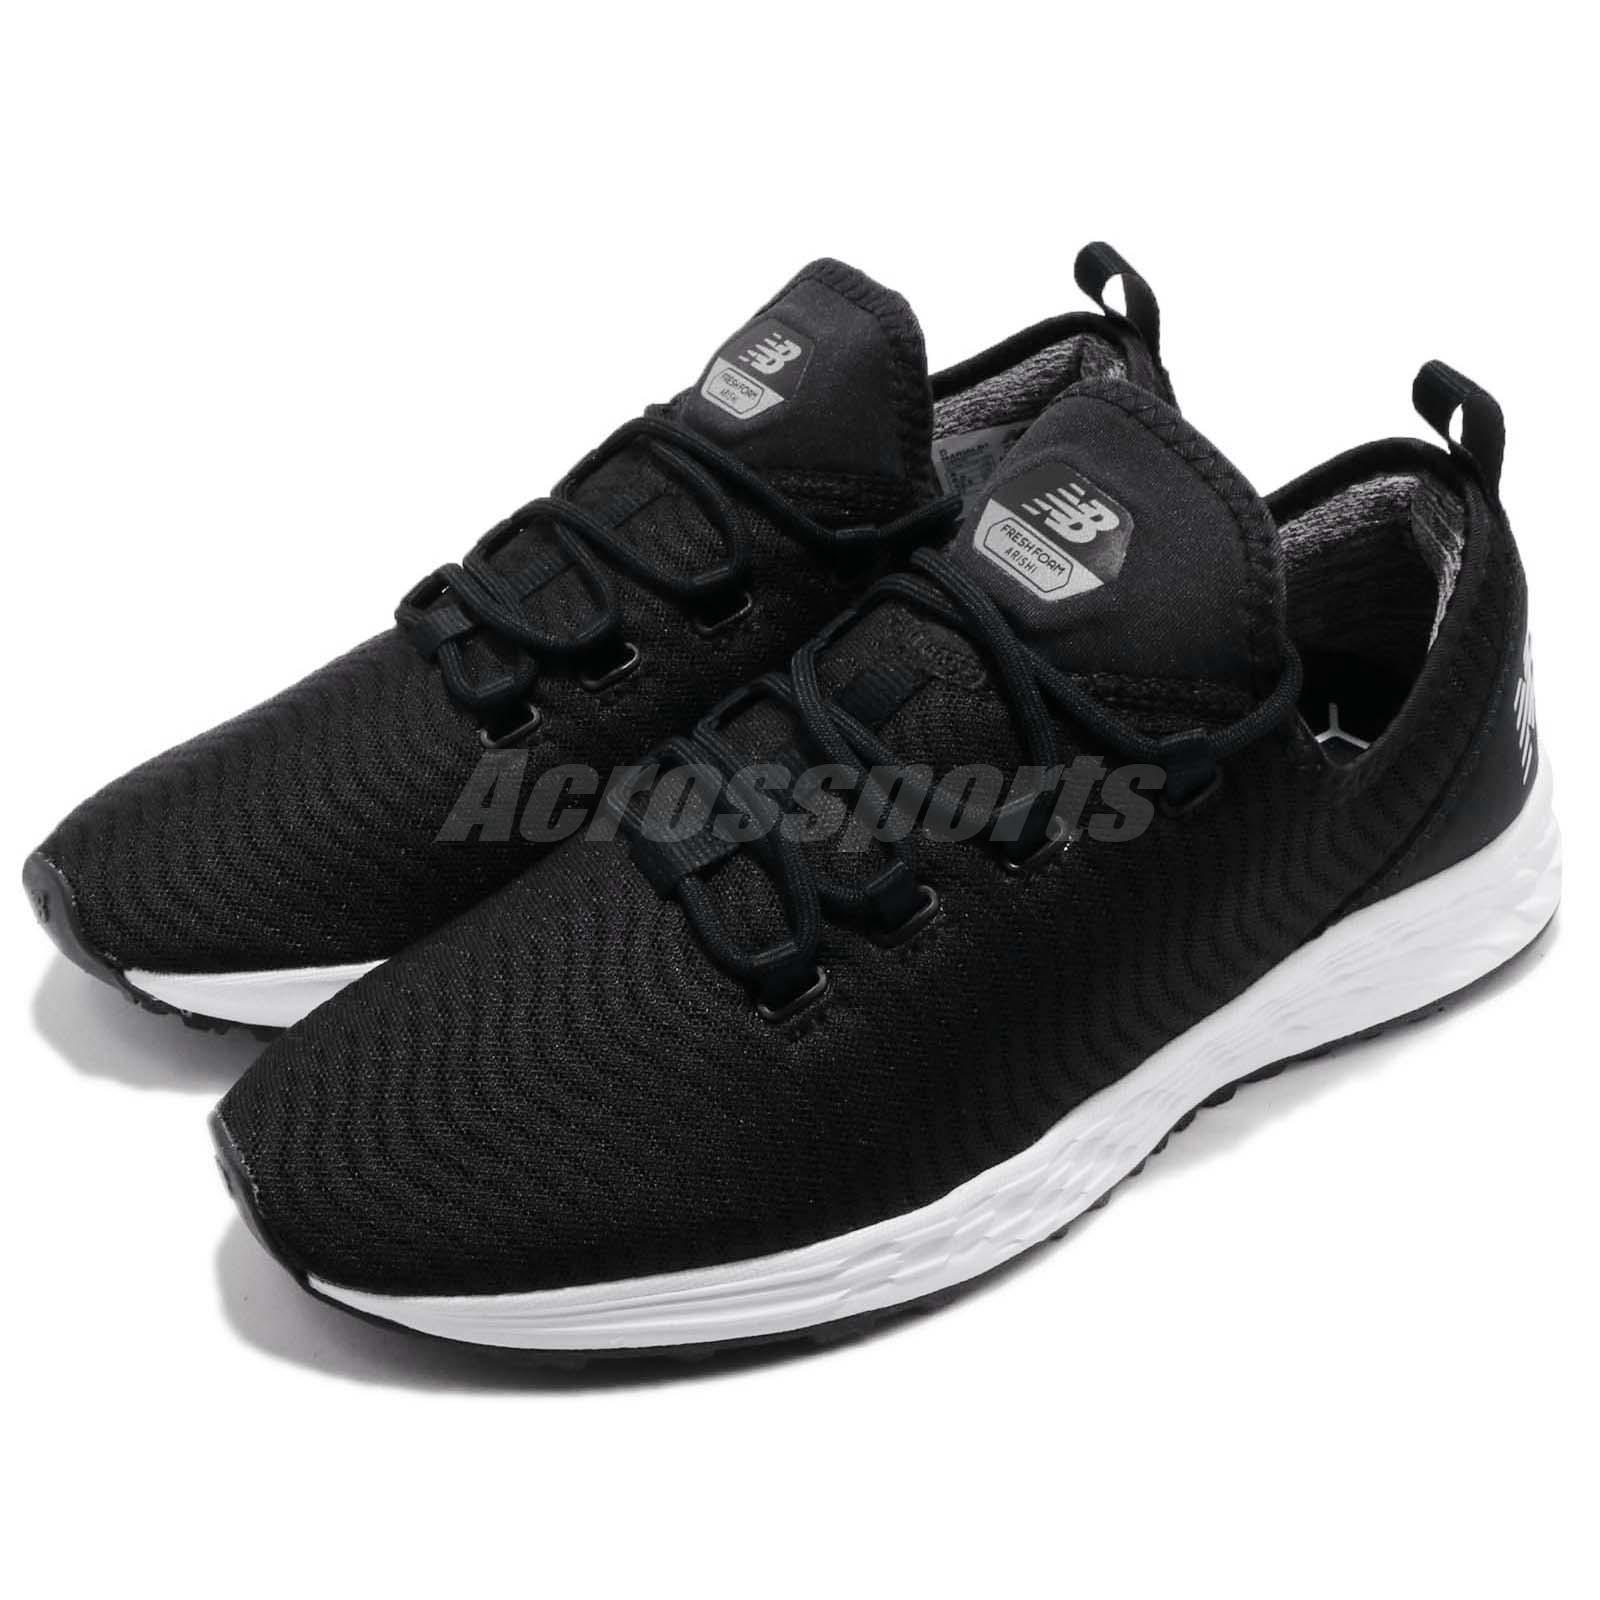 eae4414a8bf Details about New Balance MARIALB1 D Fresh Foam Arishi Black White Men Running  Shoes MARIALB1D